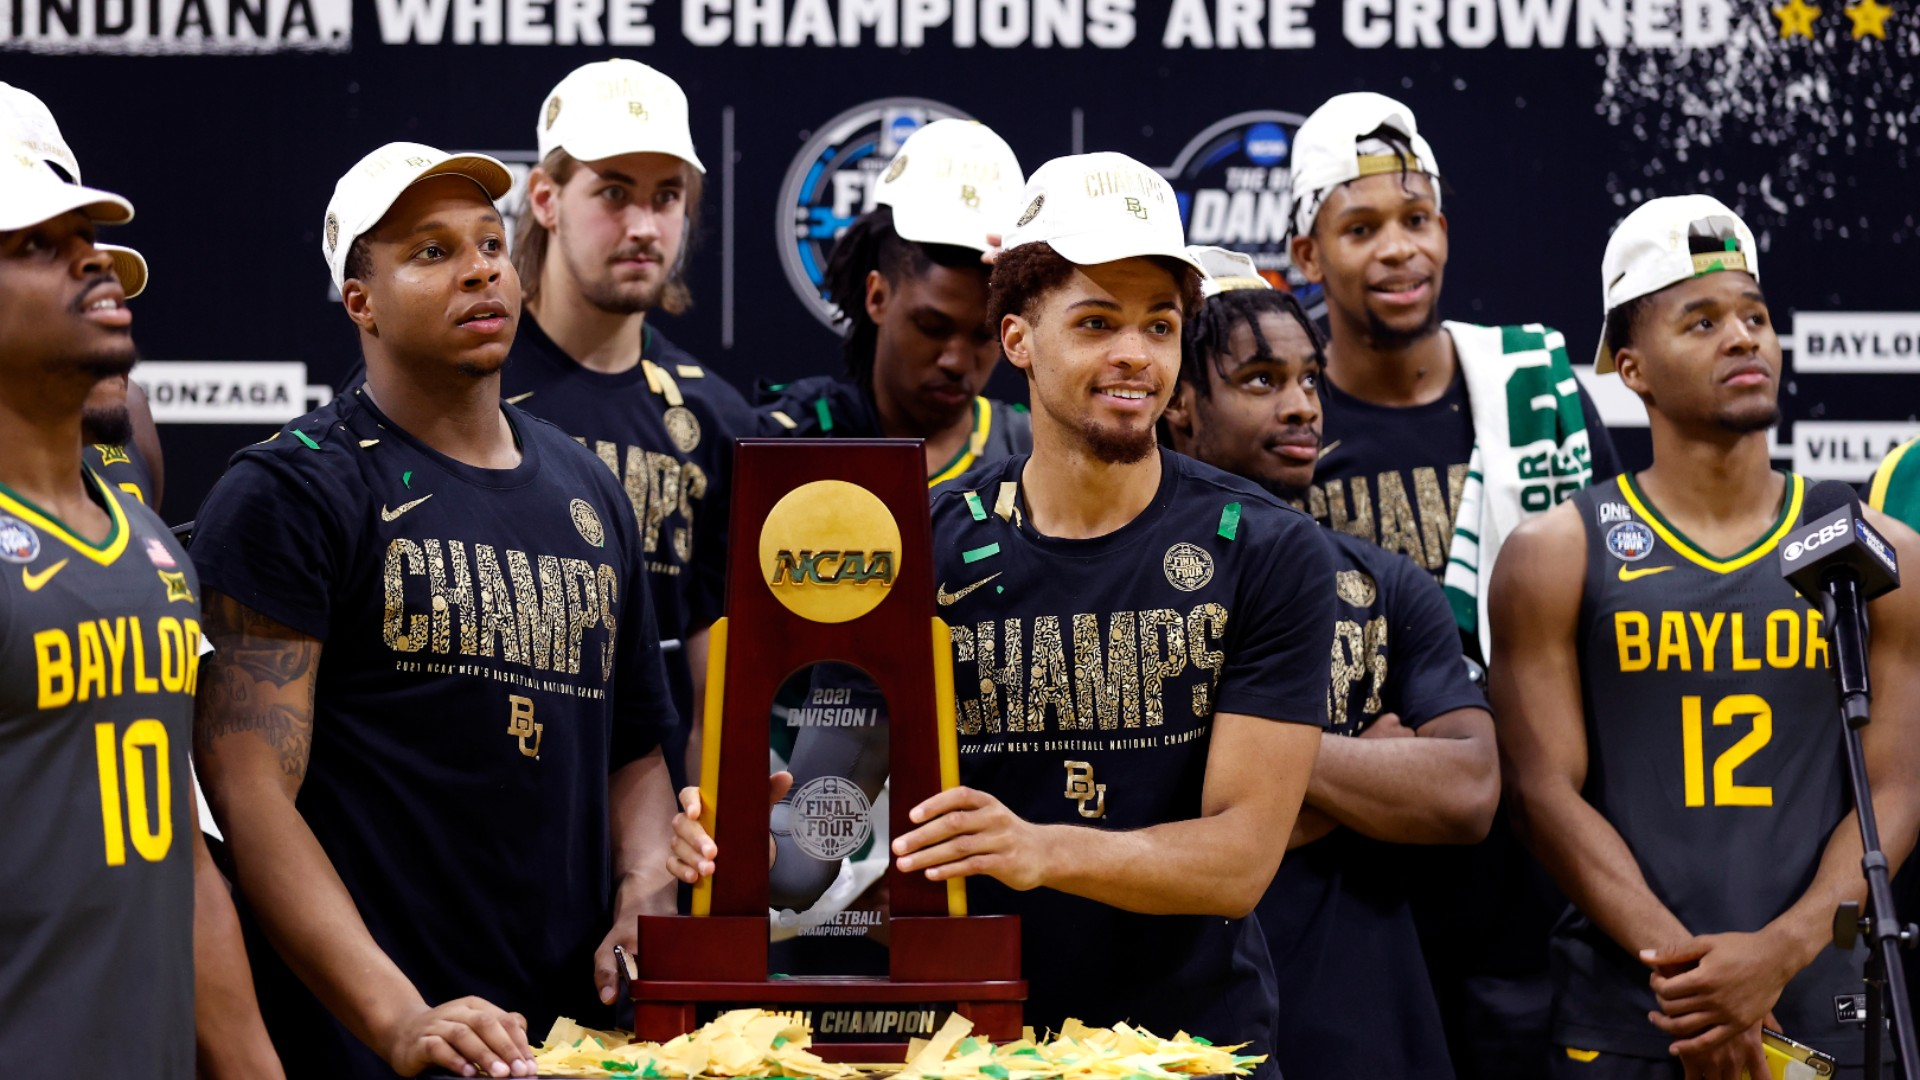 When was the last time your team won a national title in college basketball?